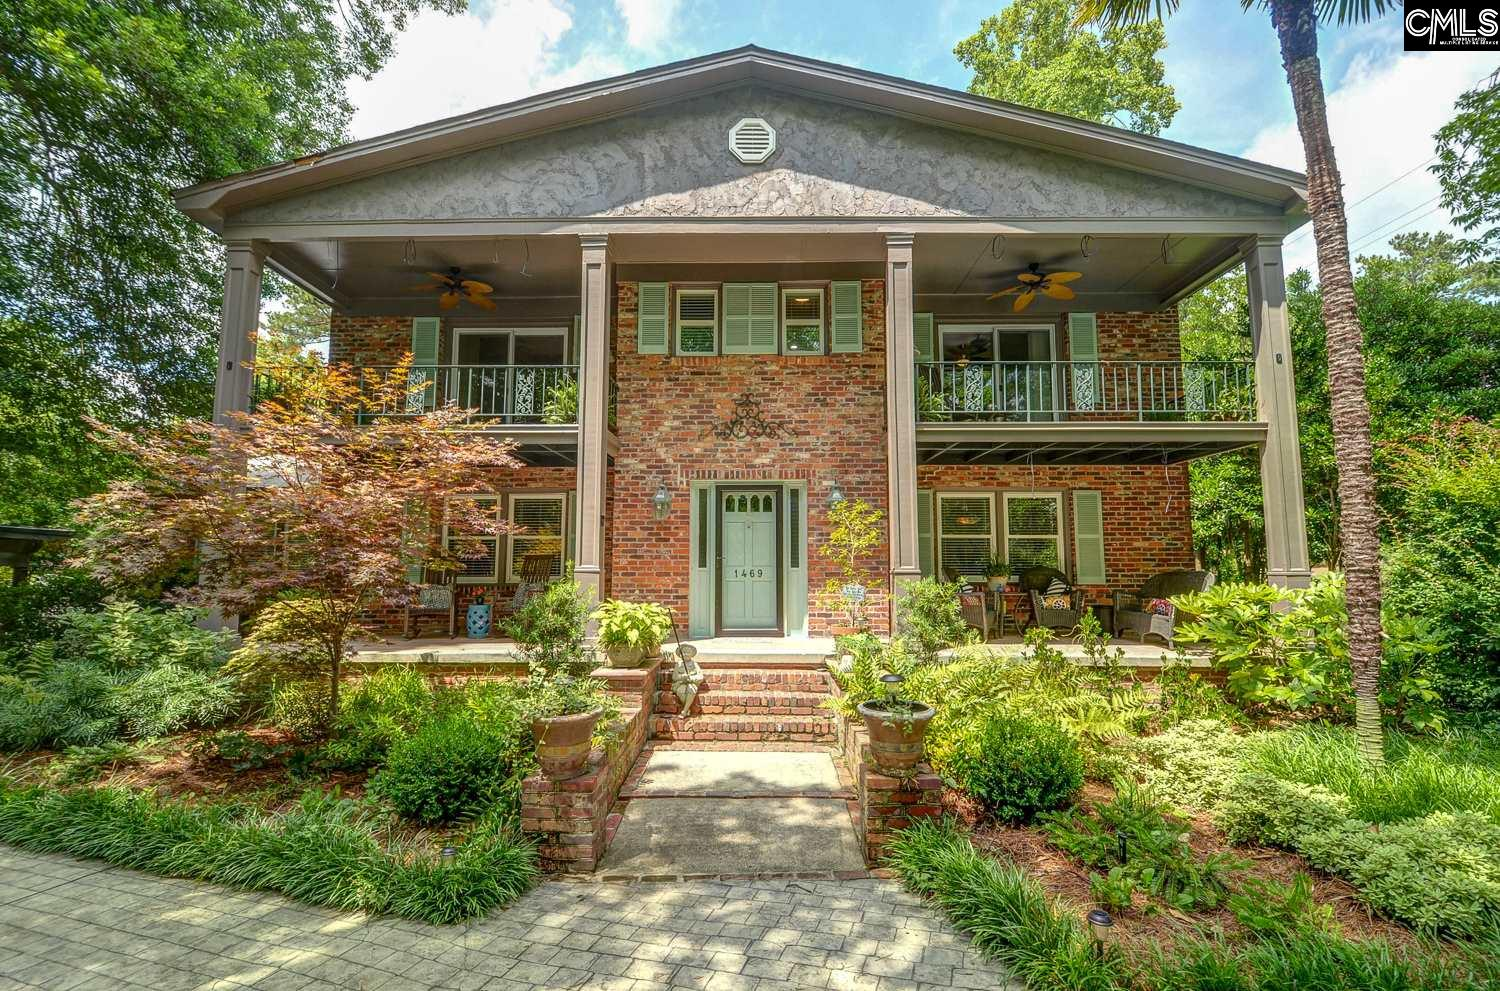 1469 Florawood Columbia, SC 29204